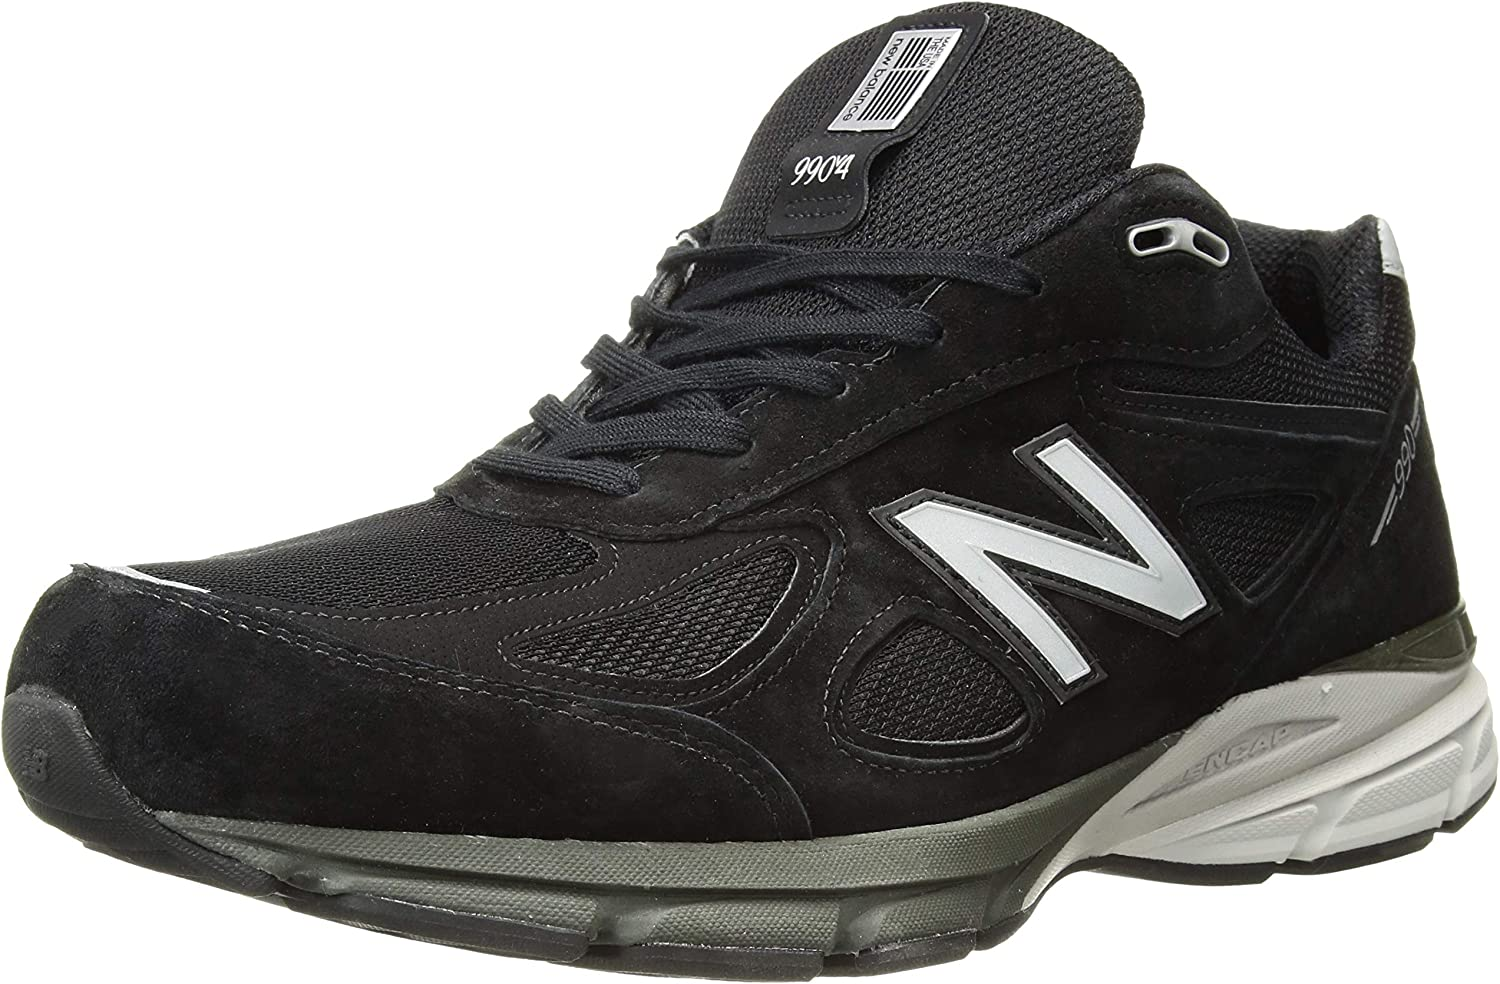 New Balance Men s 990v4, Black Silver, 10.5 6E US